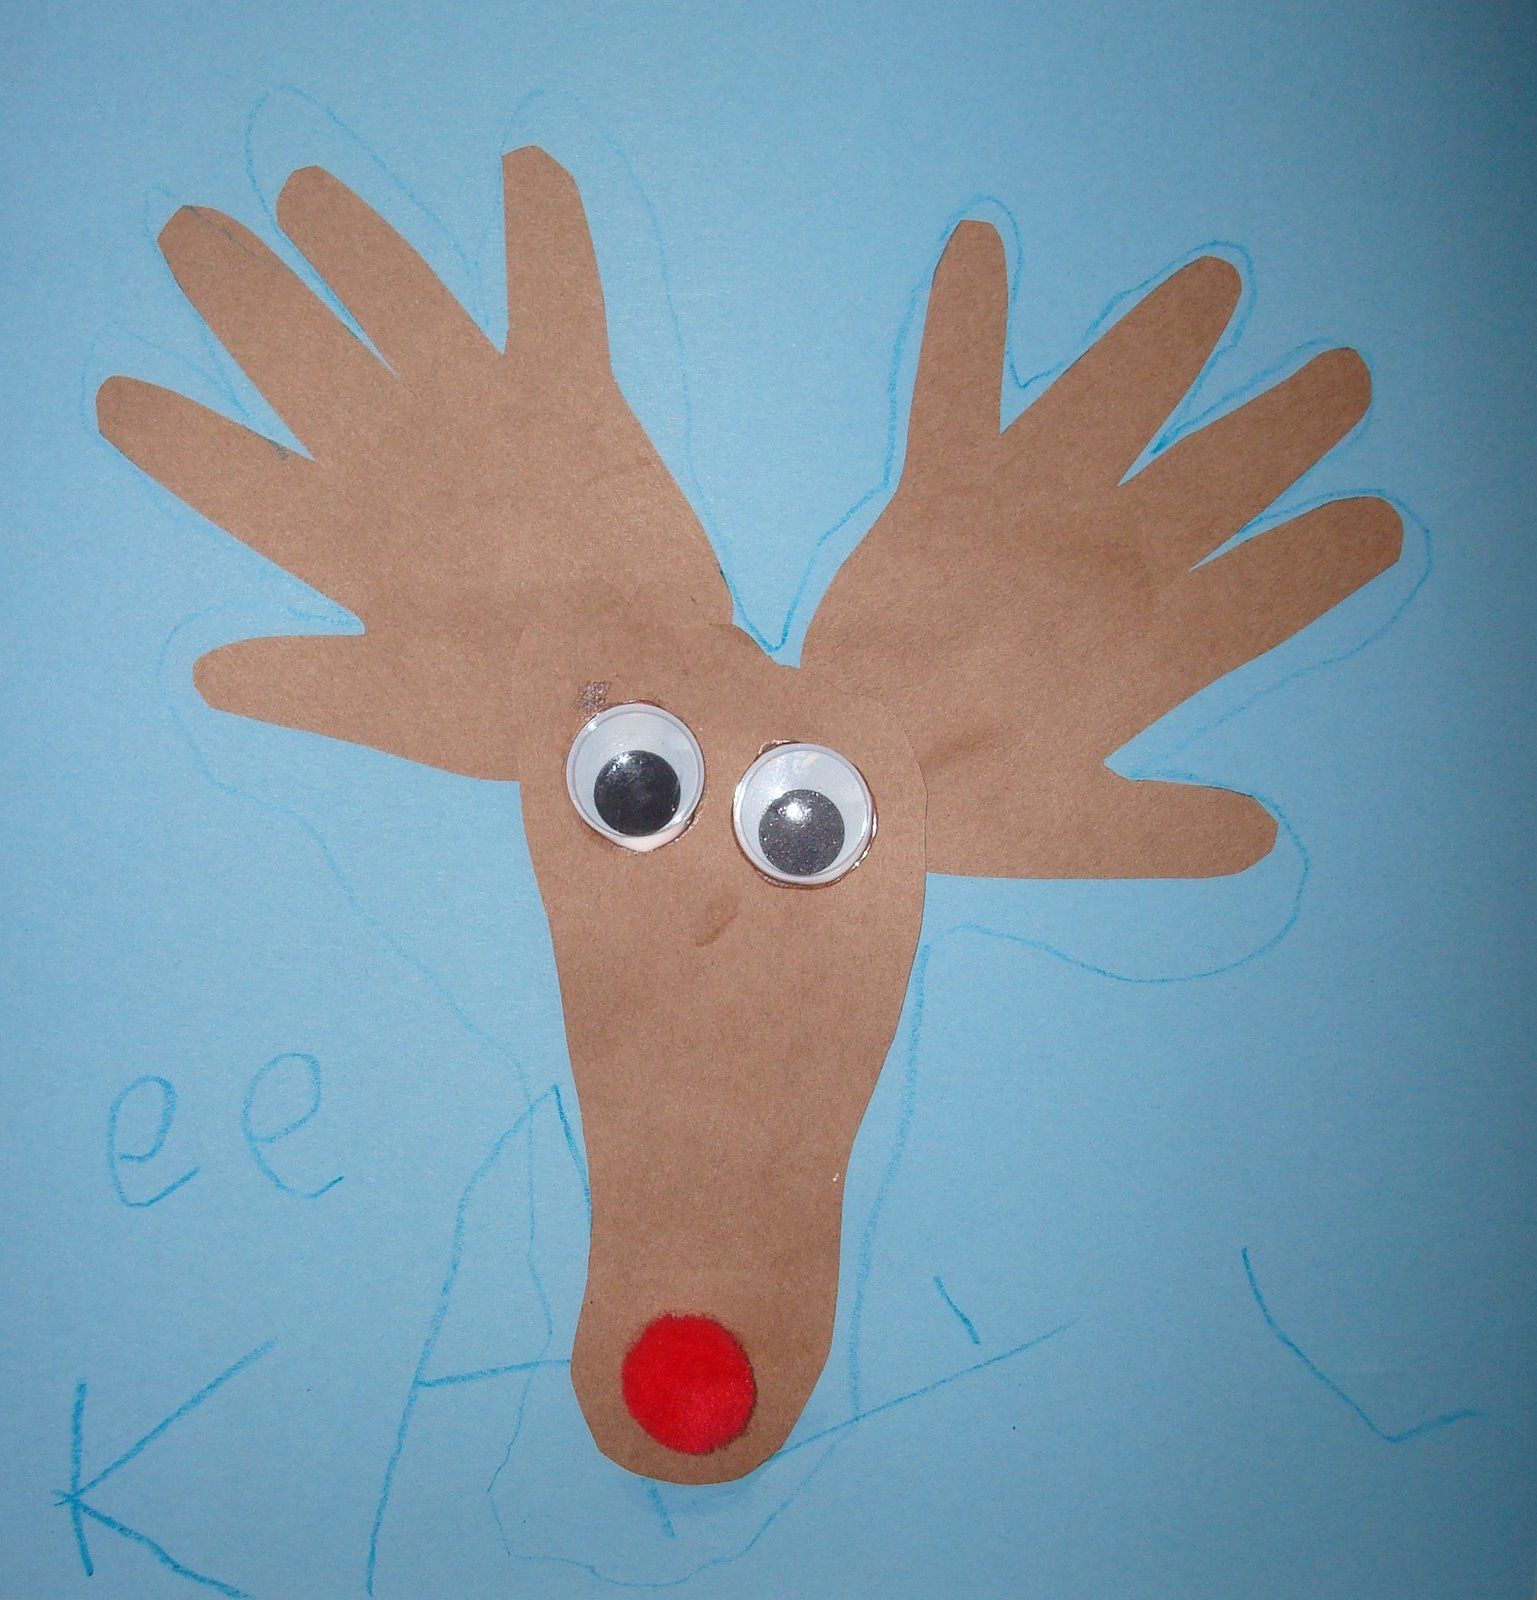 Homemaking Fun Christmas Help Your Child Trace Both Hands